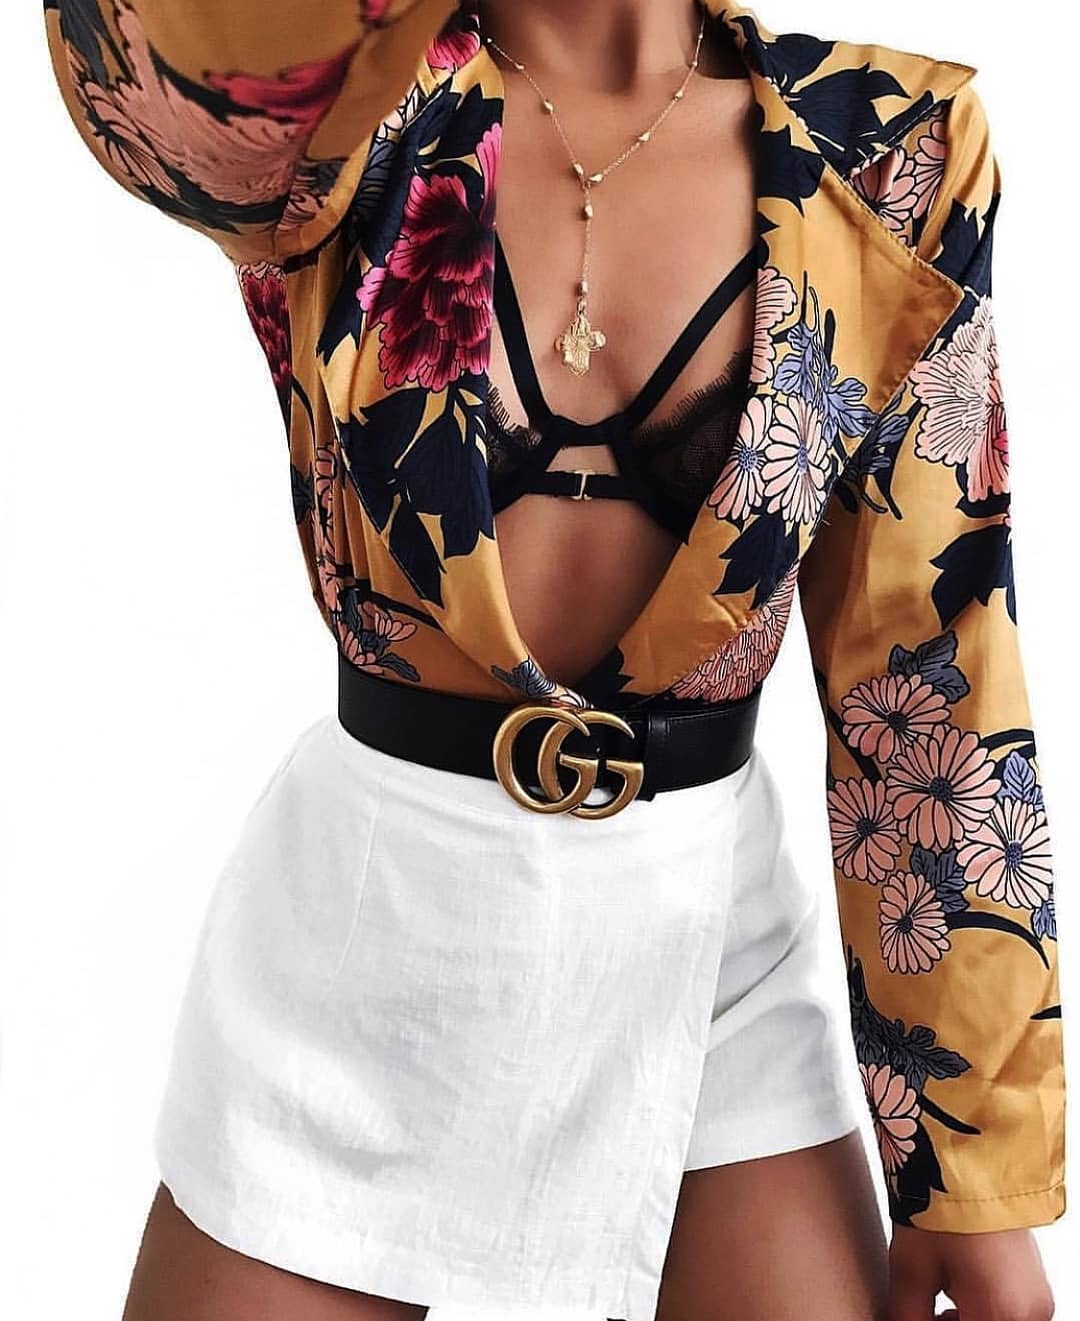 Floral Print Blazer Blouse With Cut Out Bra Top And Wrap Mini Skirt In White 2019